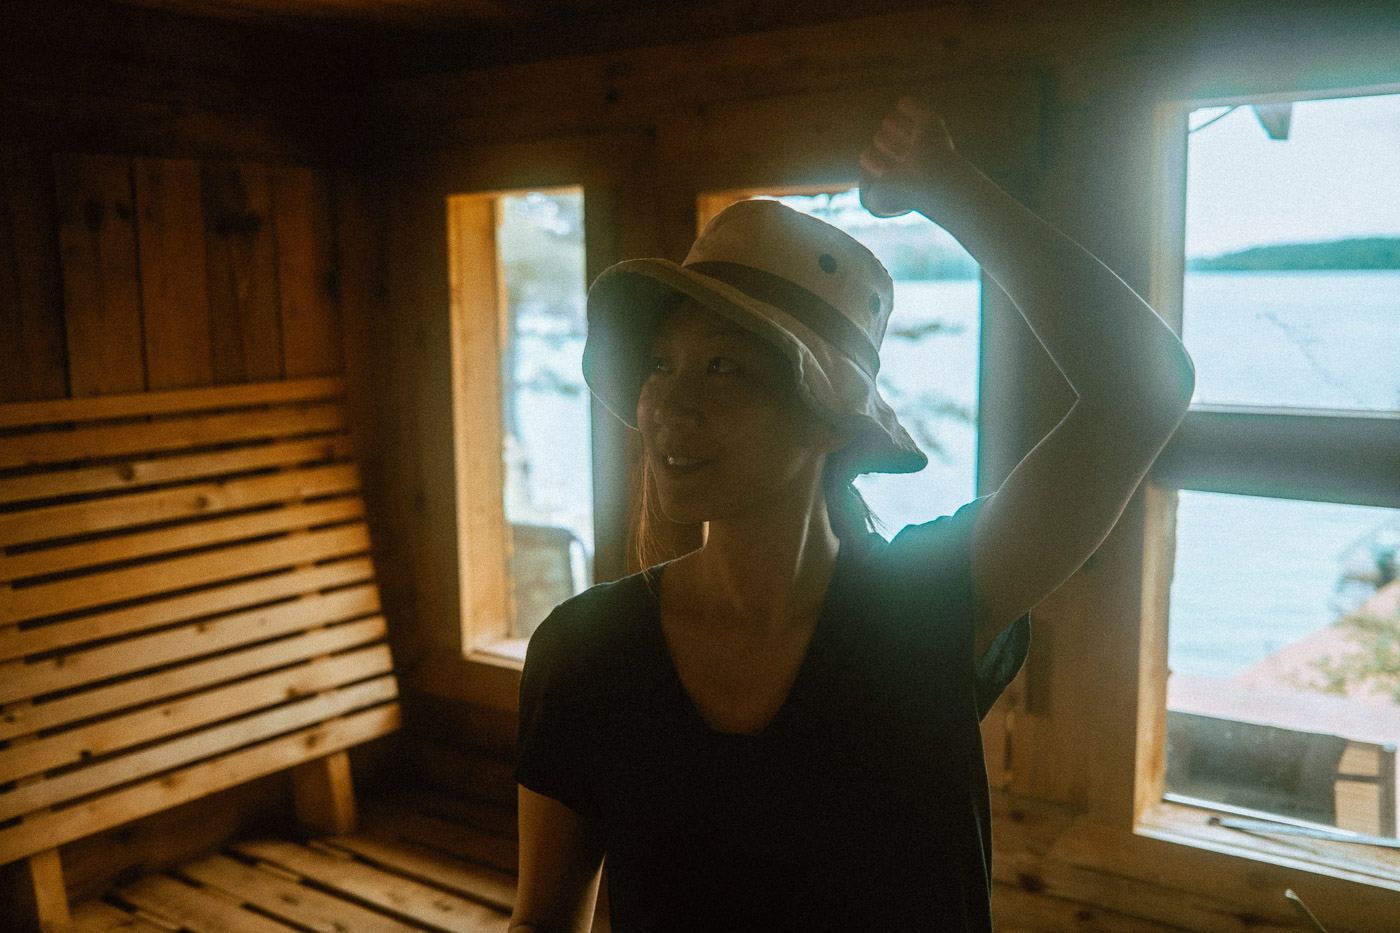 Woman exploring the inside of the sauna located at Pine Falls Lodge